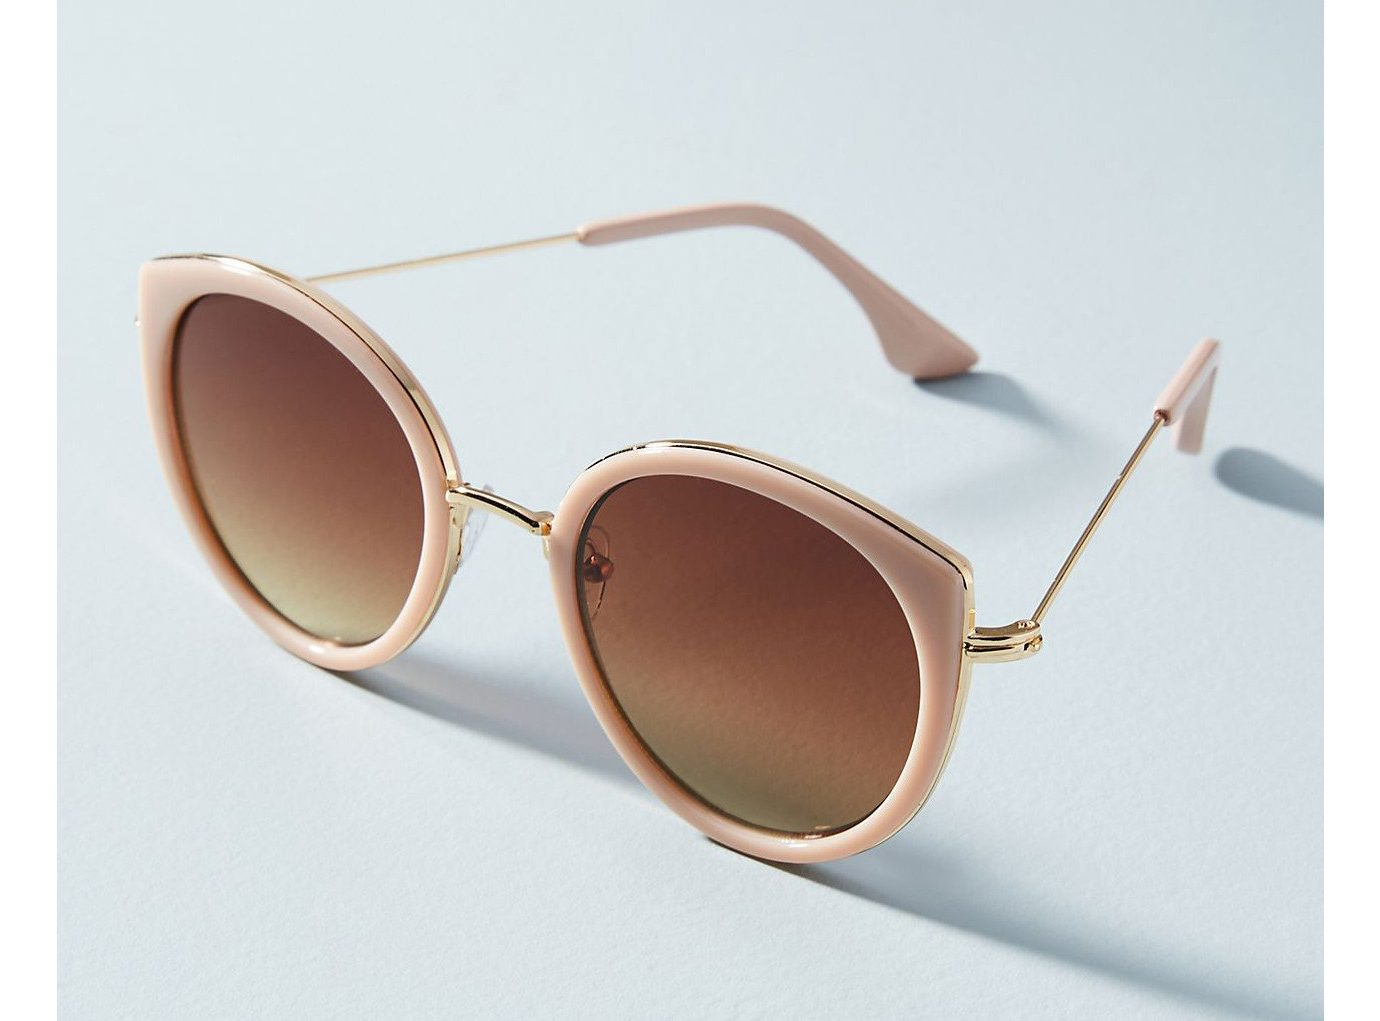 Spring Travel Style + Design Summer Travel Travel Lifestyle Travel Shop eyewear spectacles accessory sunglasses vision care glasses goggles product design product case beige font peach enamel